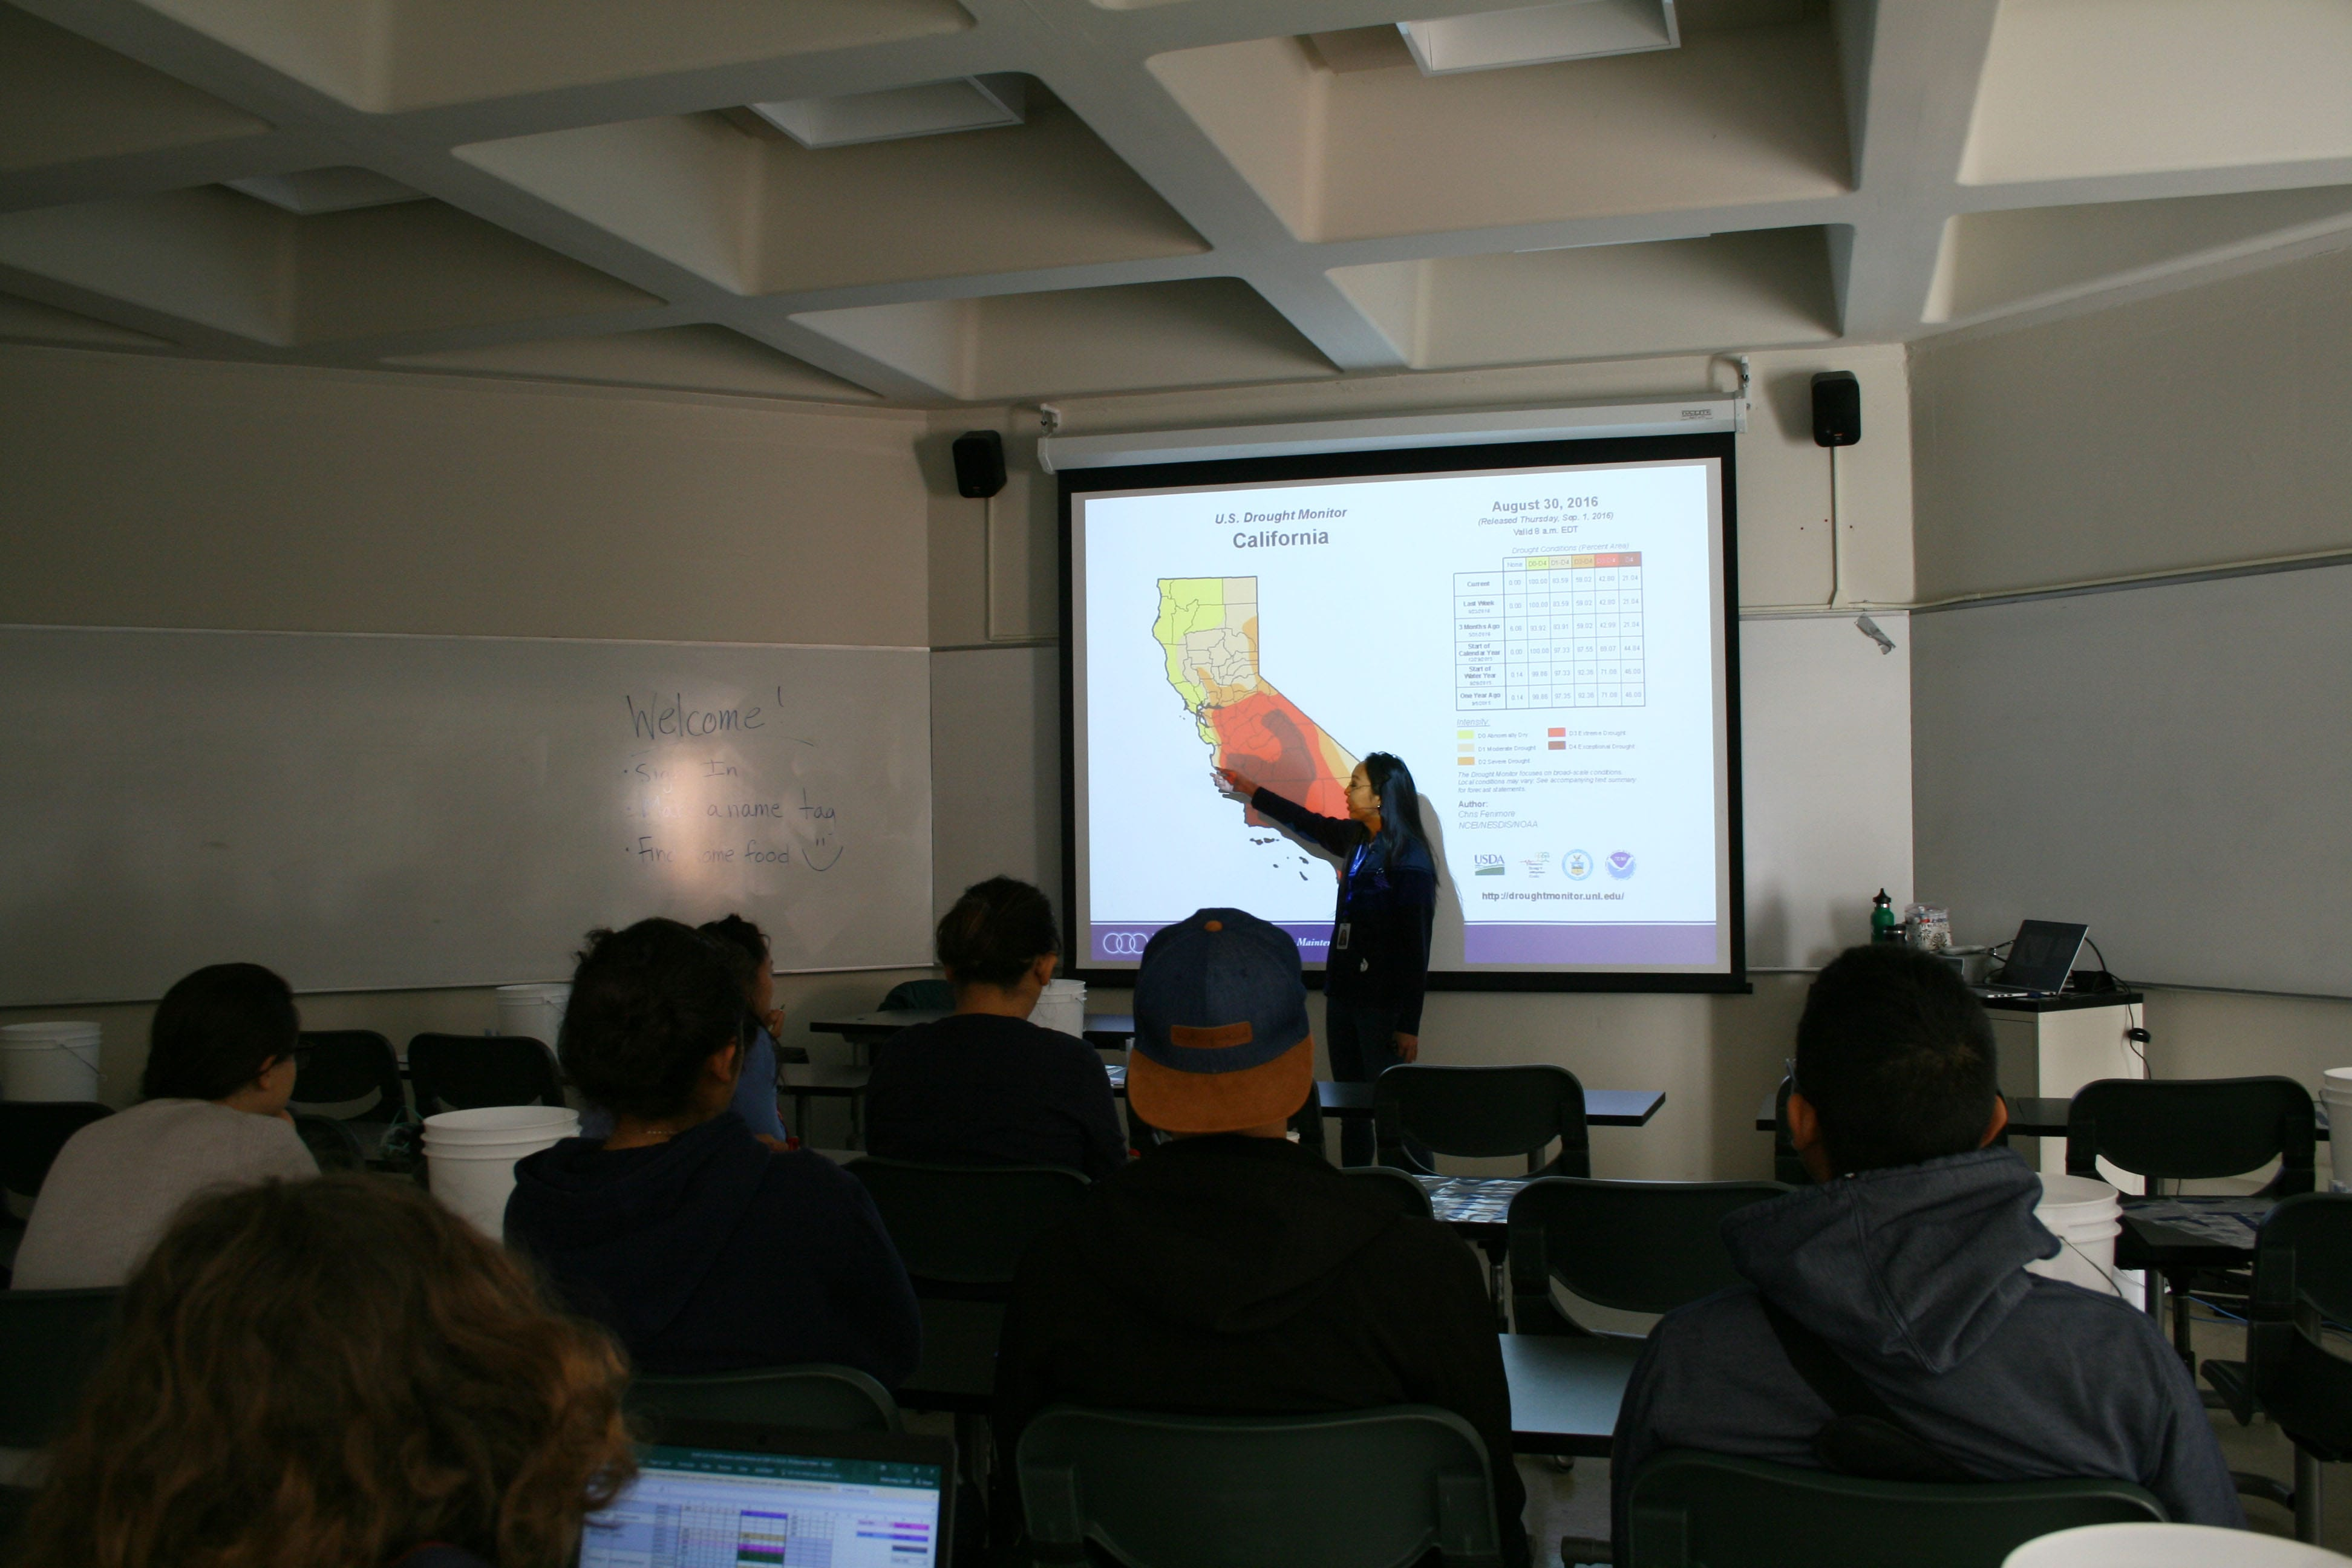 Presenter pointing at a heat map of california